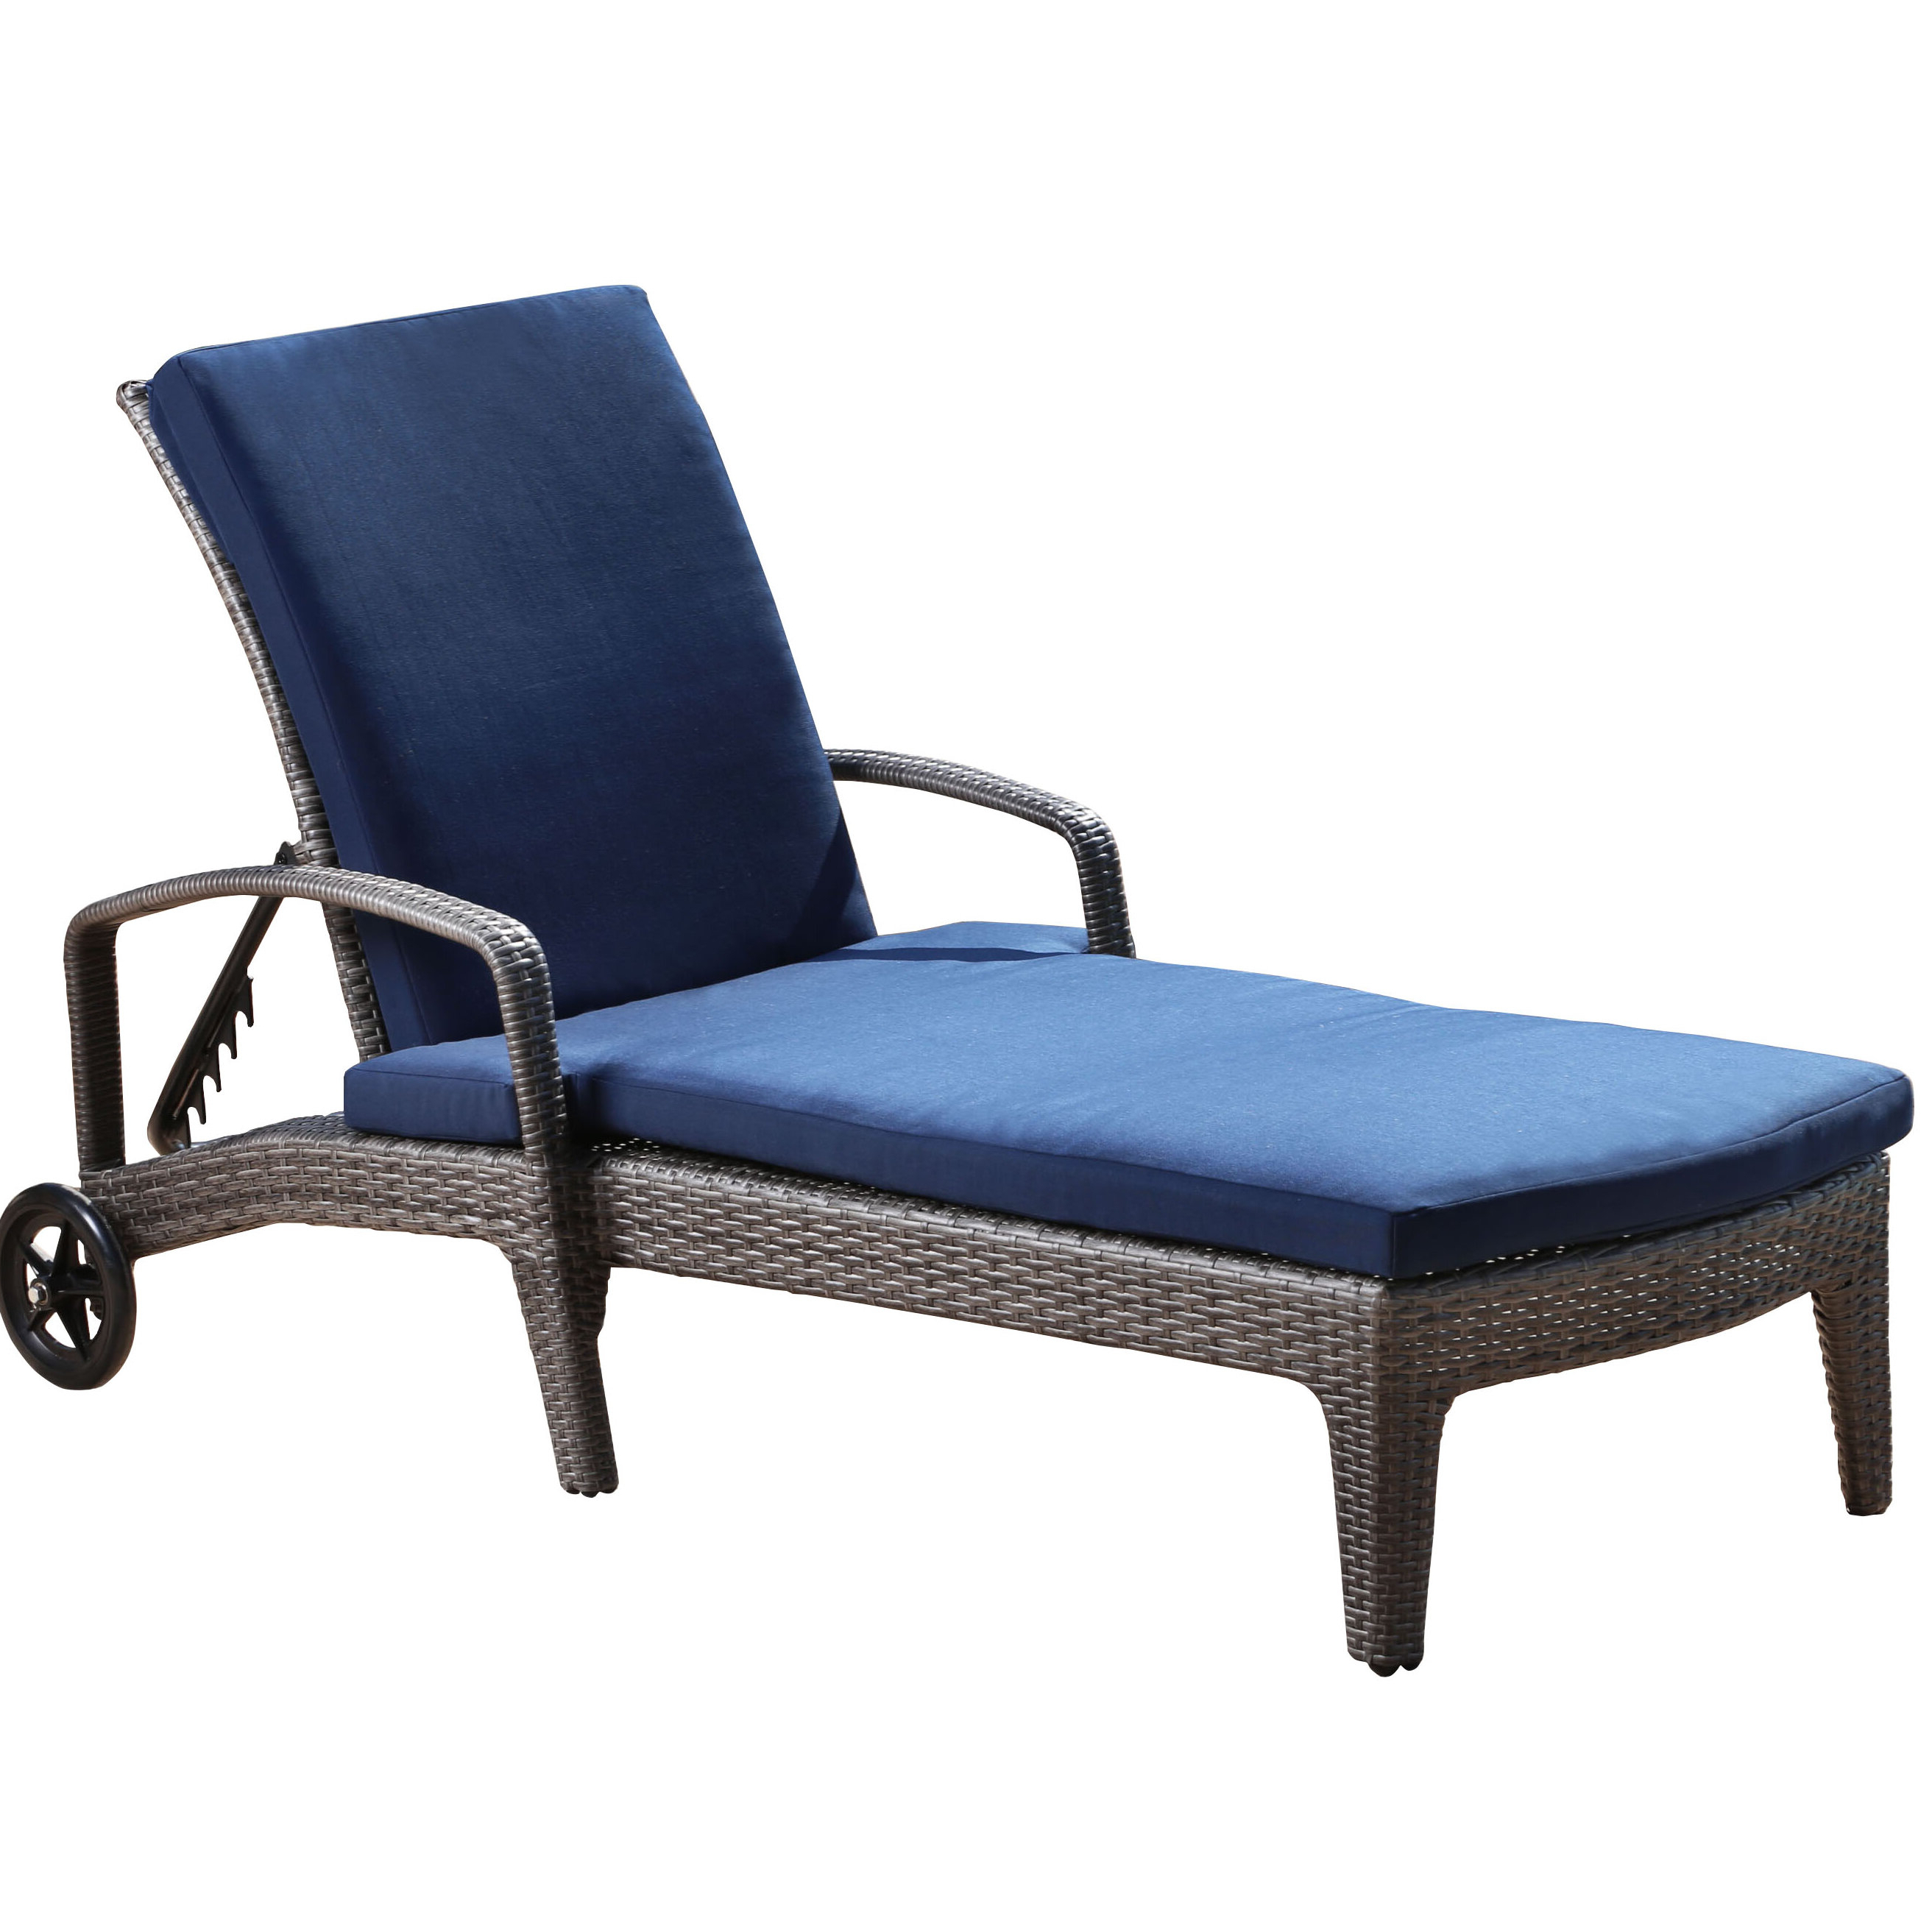 Trendy Ostrowski Outdoor Wicker Adjustable Reclining Chaise Lounge Within Outdoor Adjustable Reclining Wicker Chaise Lounges (View 21 of 25)